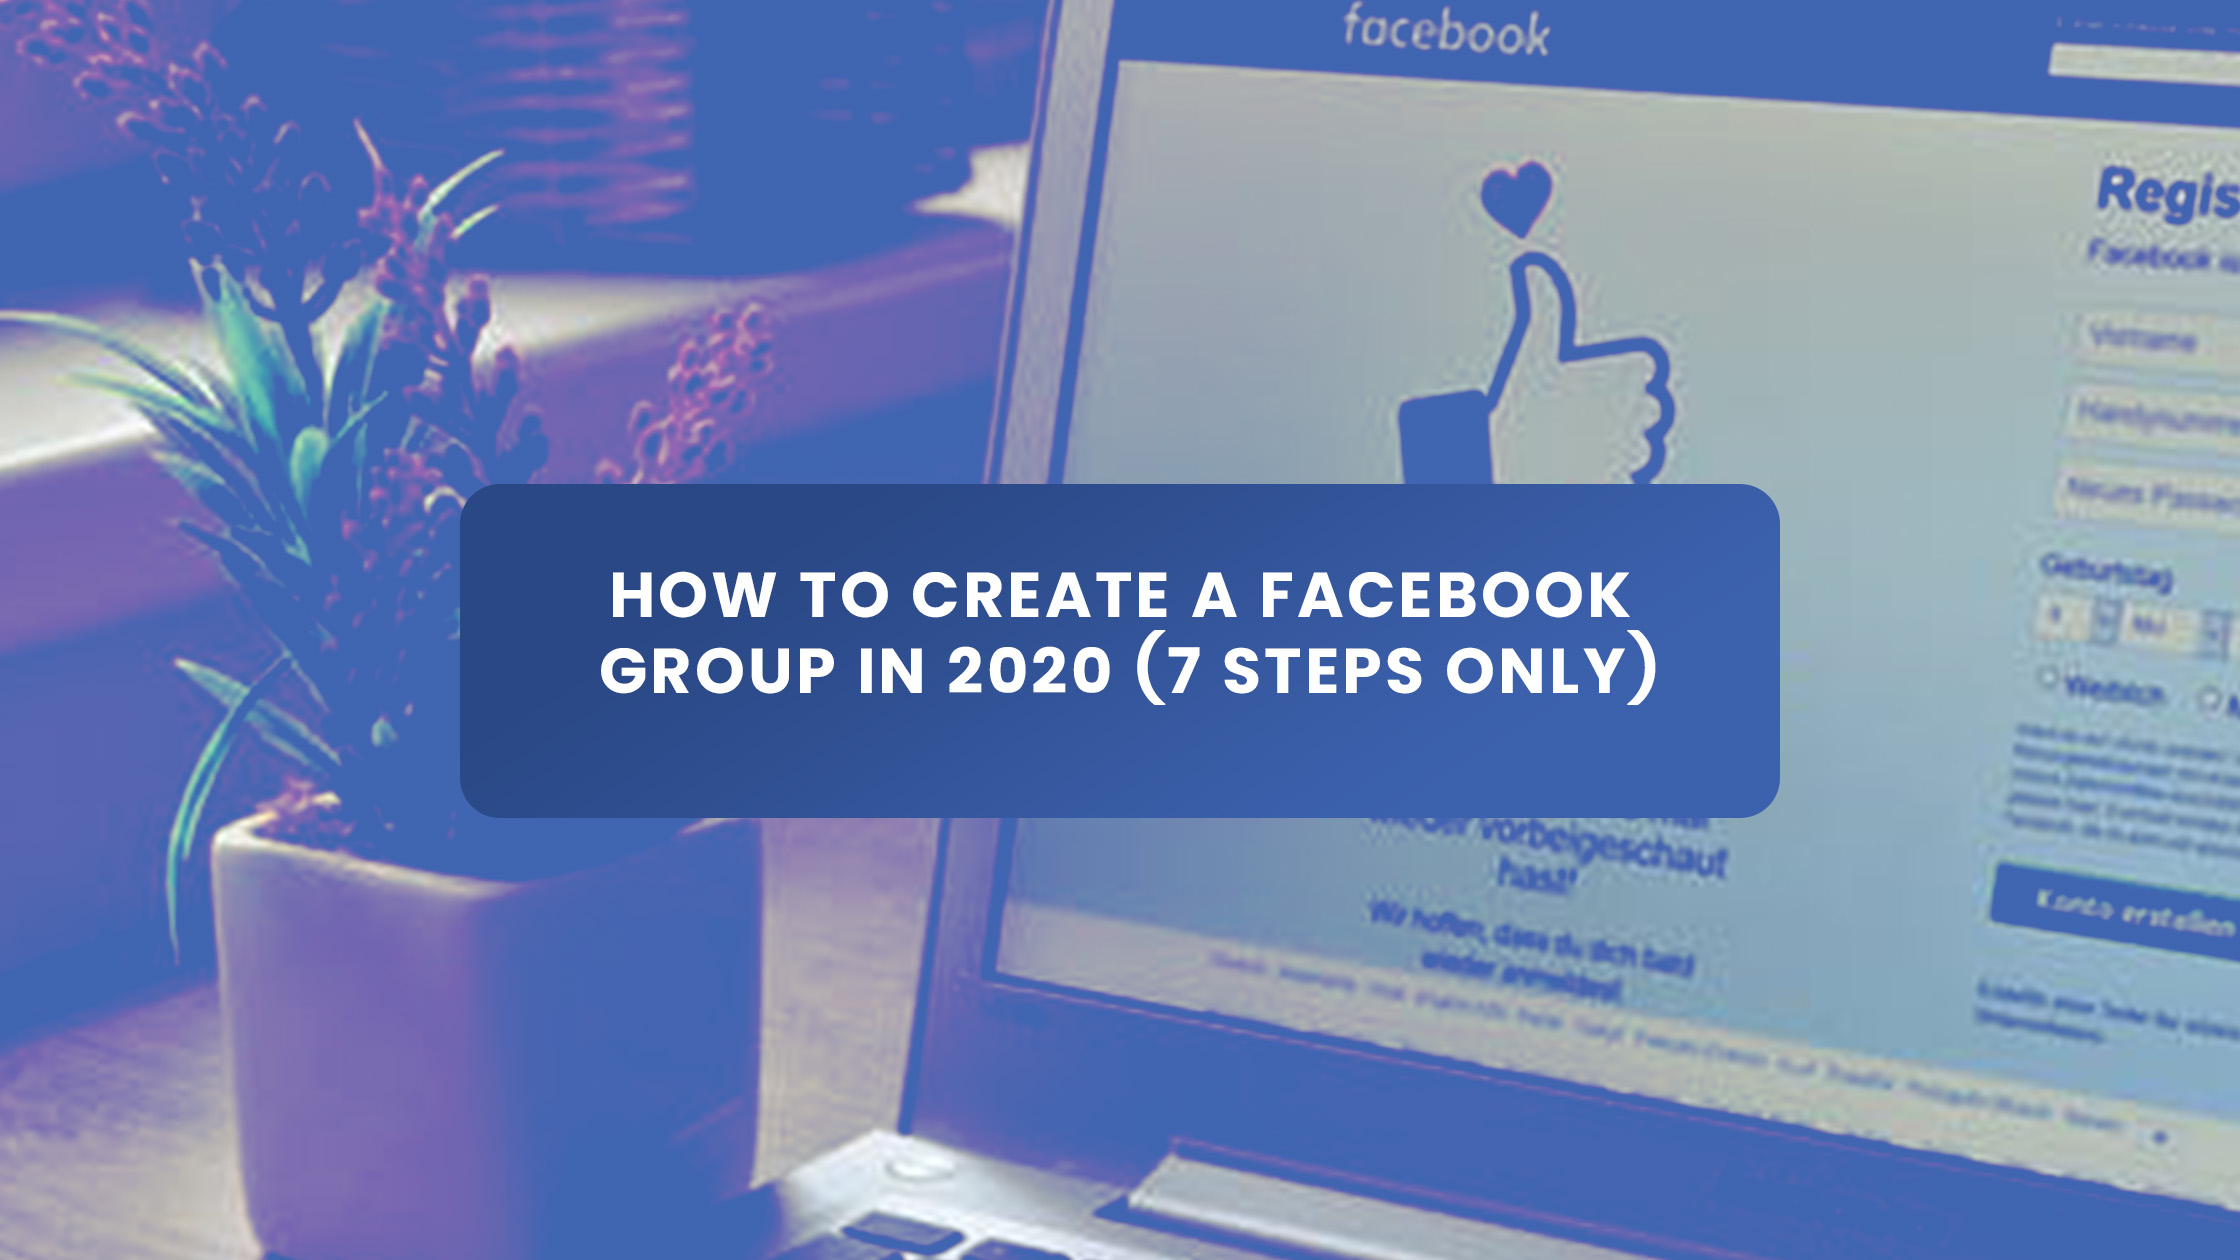 How to Create a Facebook Group in 2020 (7 Steps ONLY)